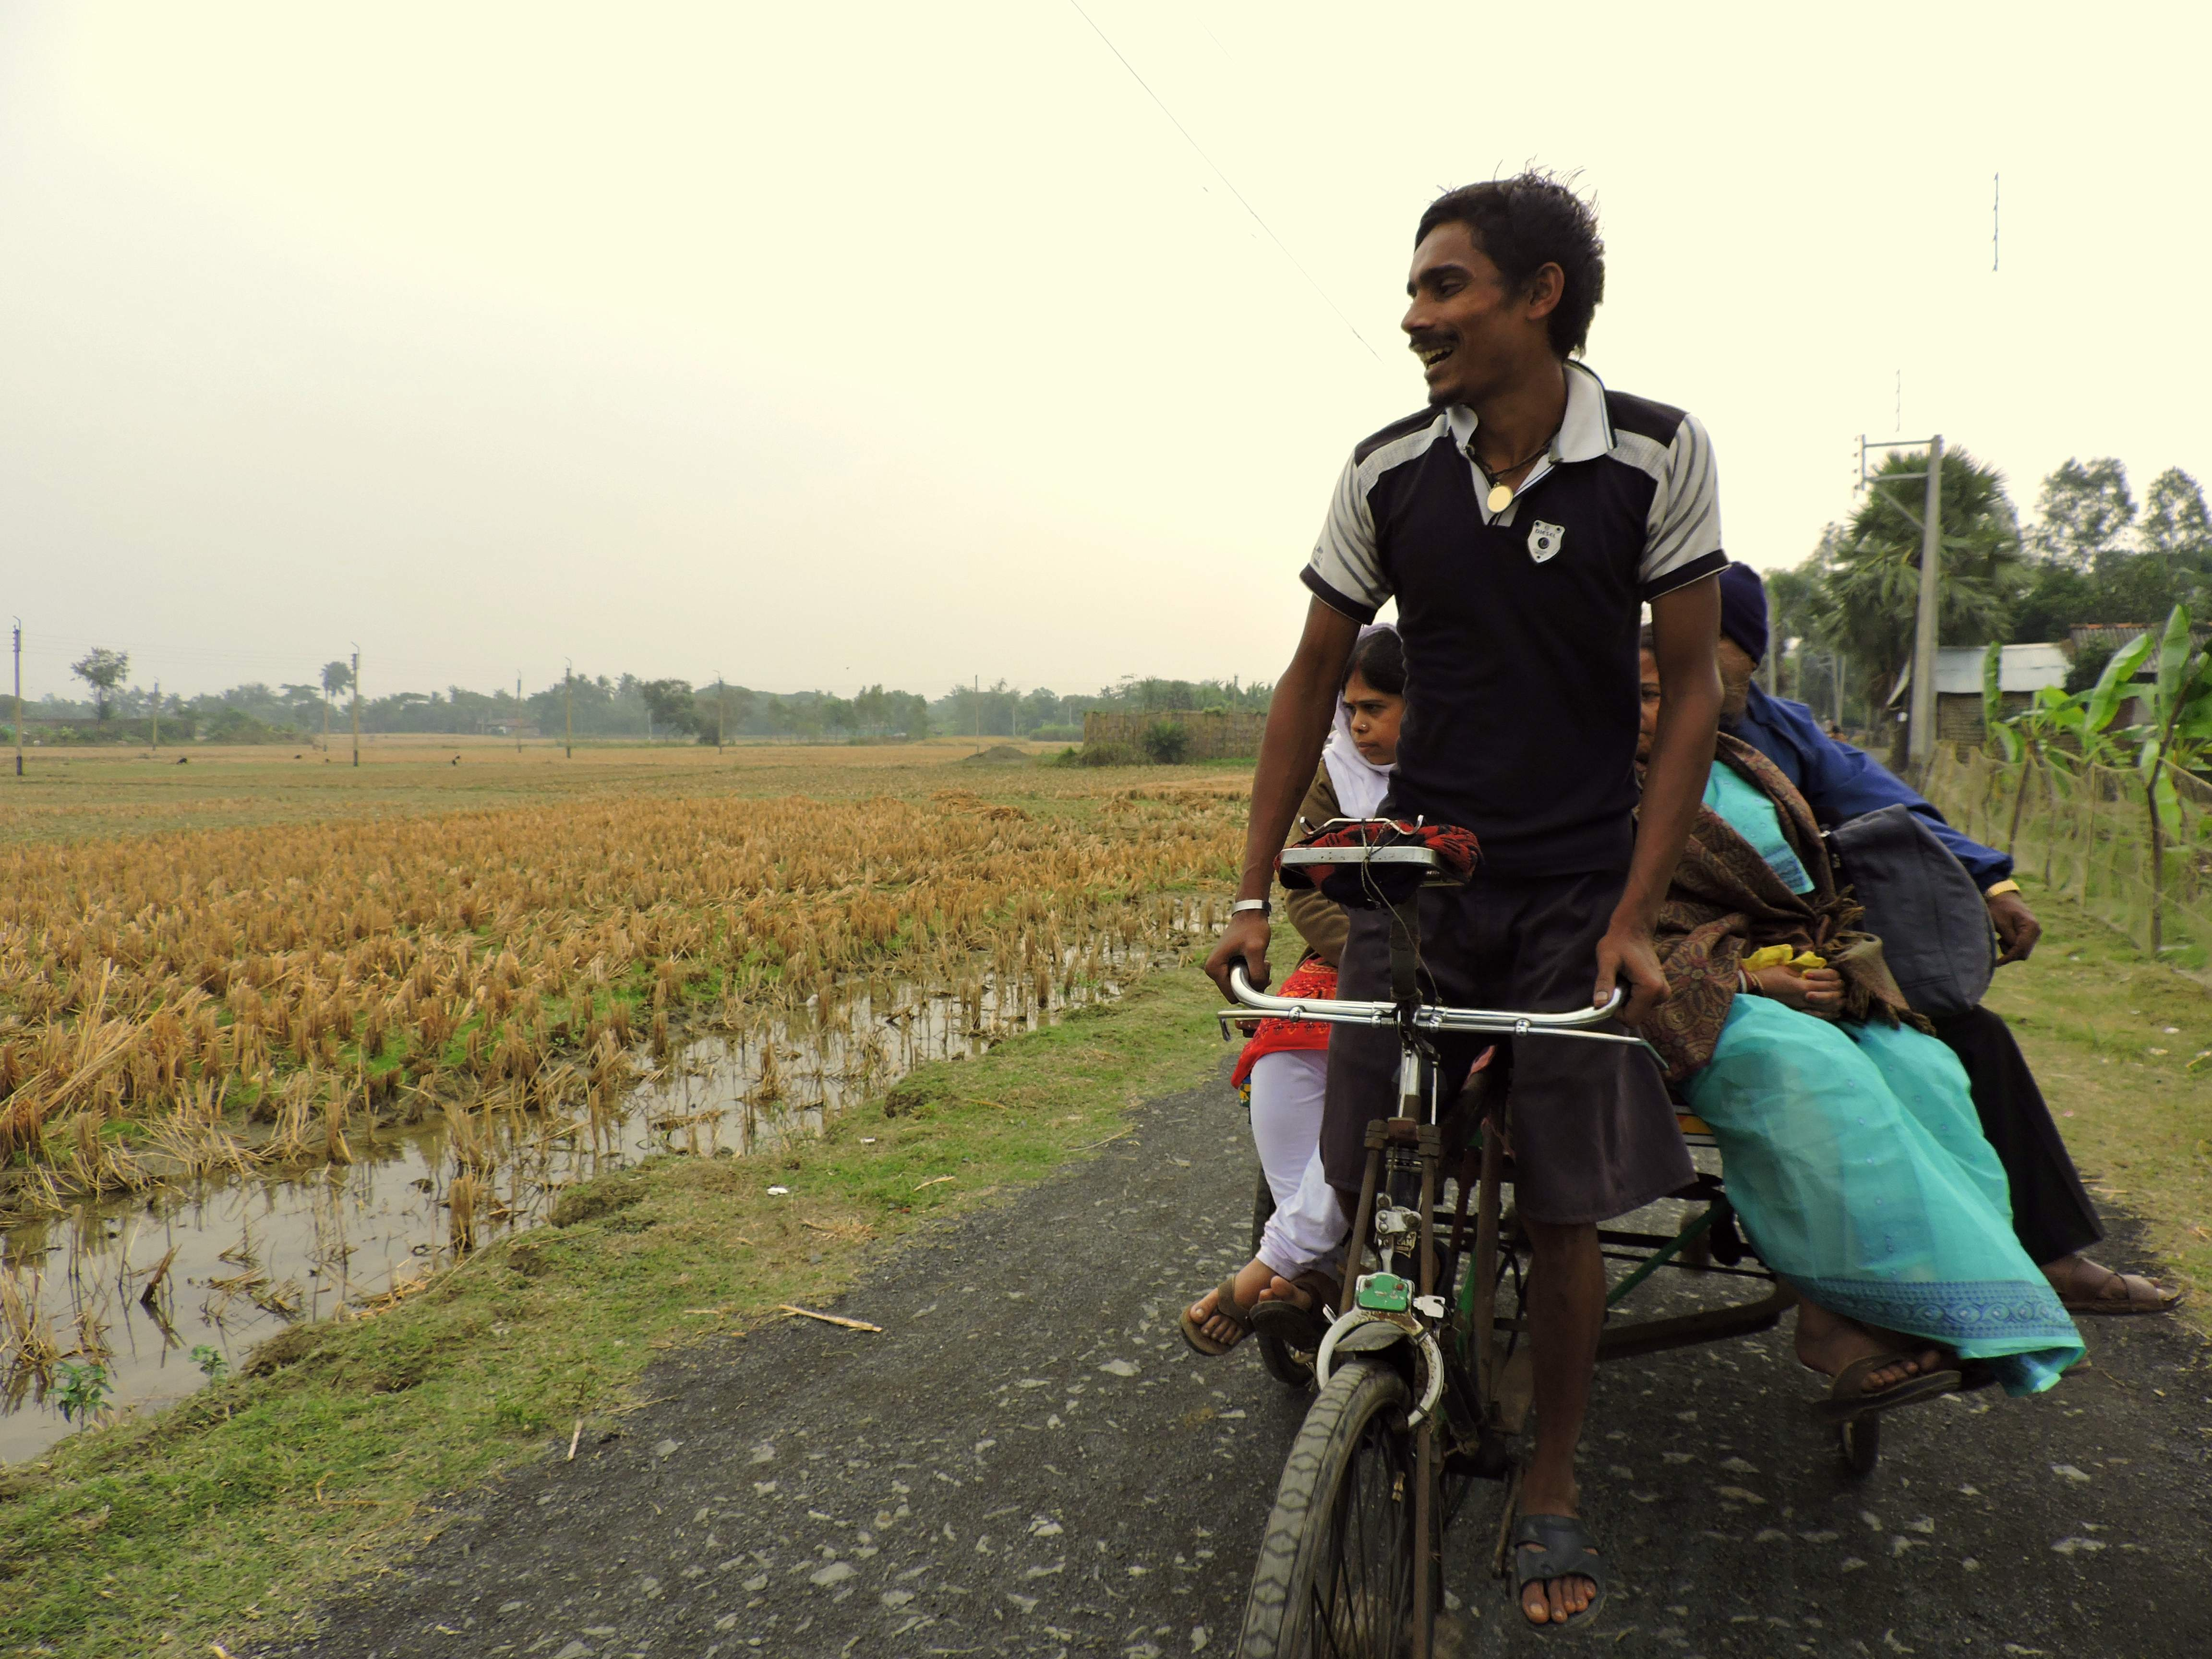 The journey through the rural areas gave us plenty to see!